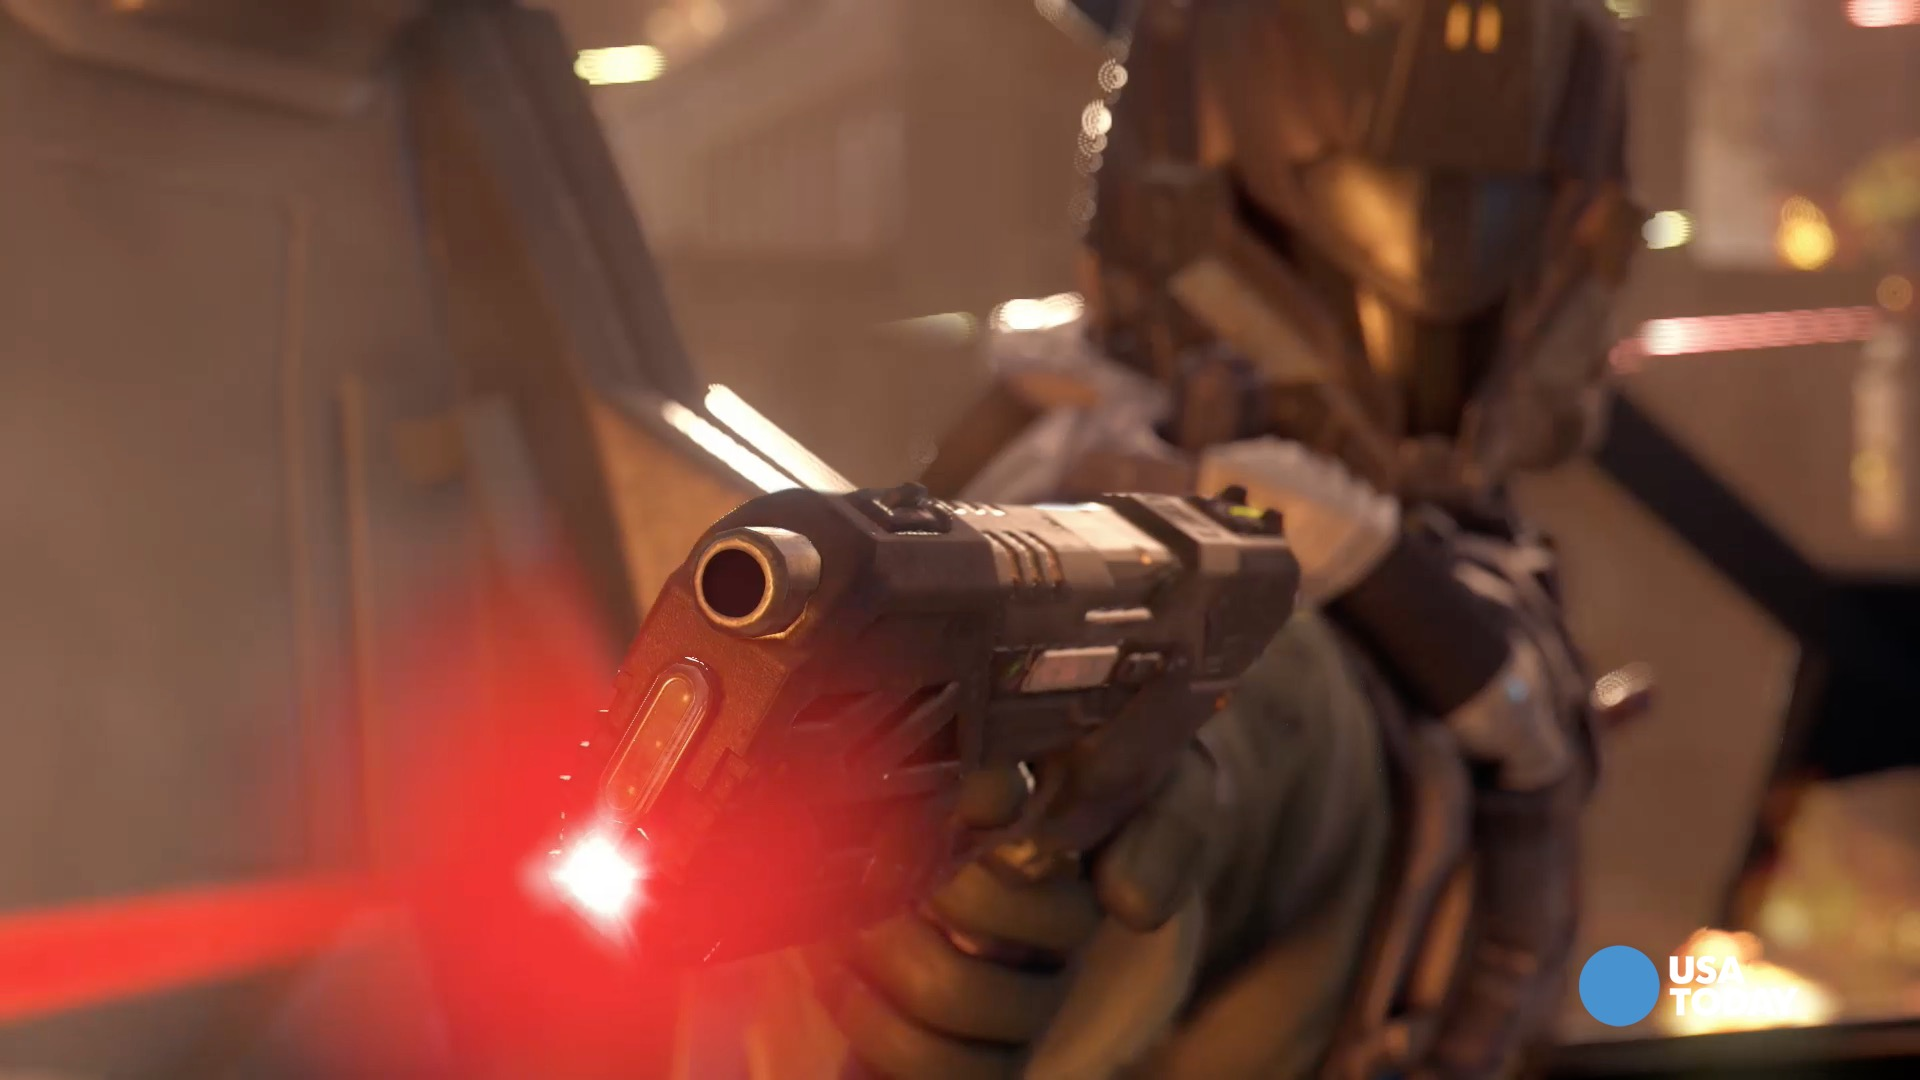 Treyarch studio head Mark Lamia talks with USA TODAY's Mike Snider about what players can expect in the gameplay of Call of Duty Black Ops 3 at the E3 2015 Conference.